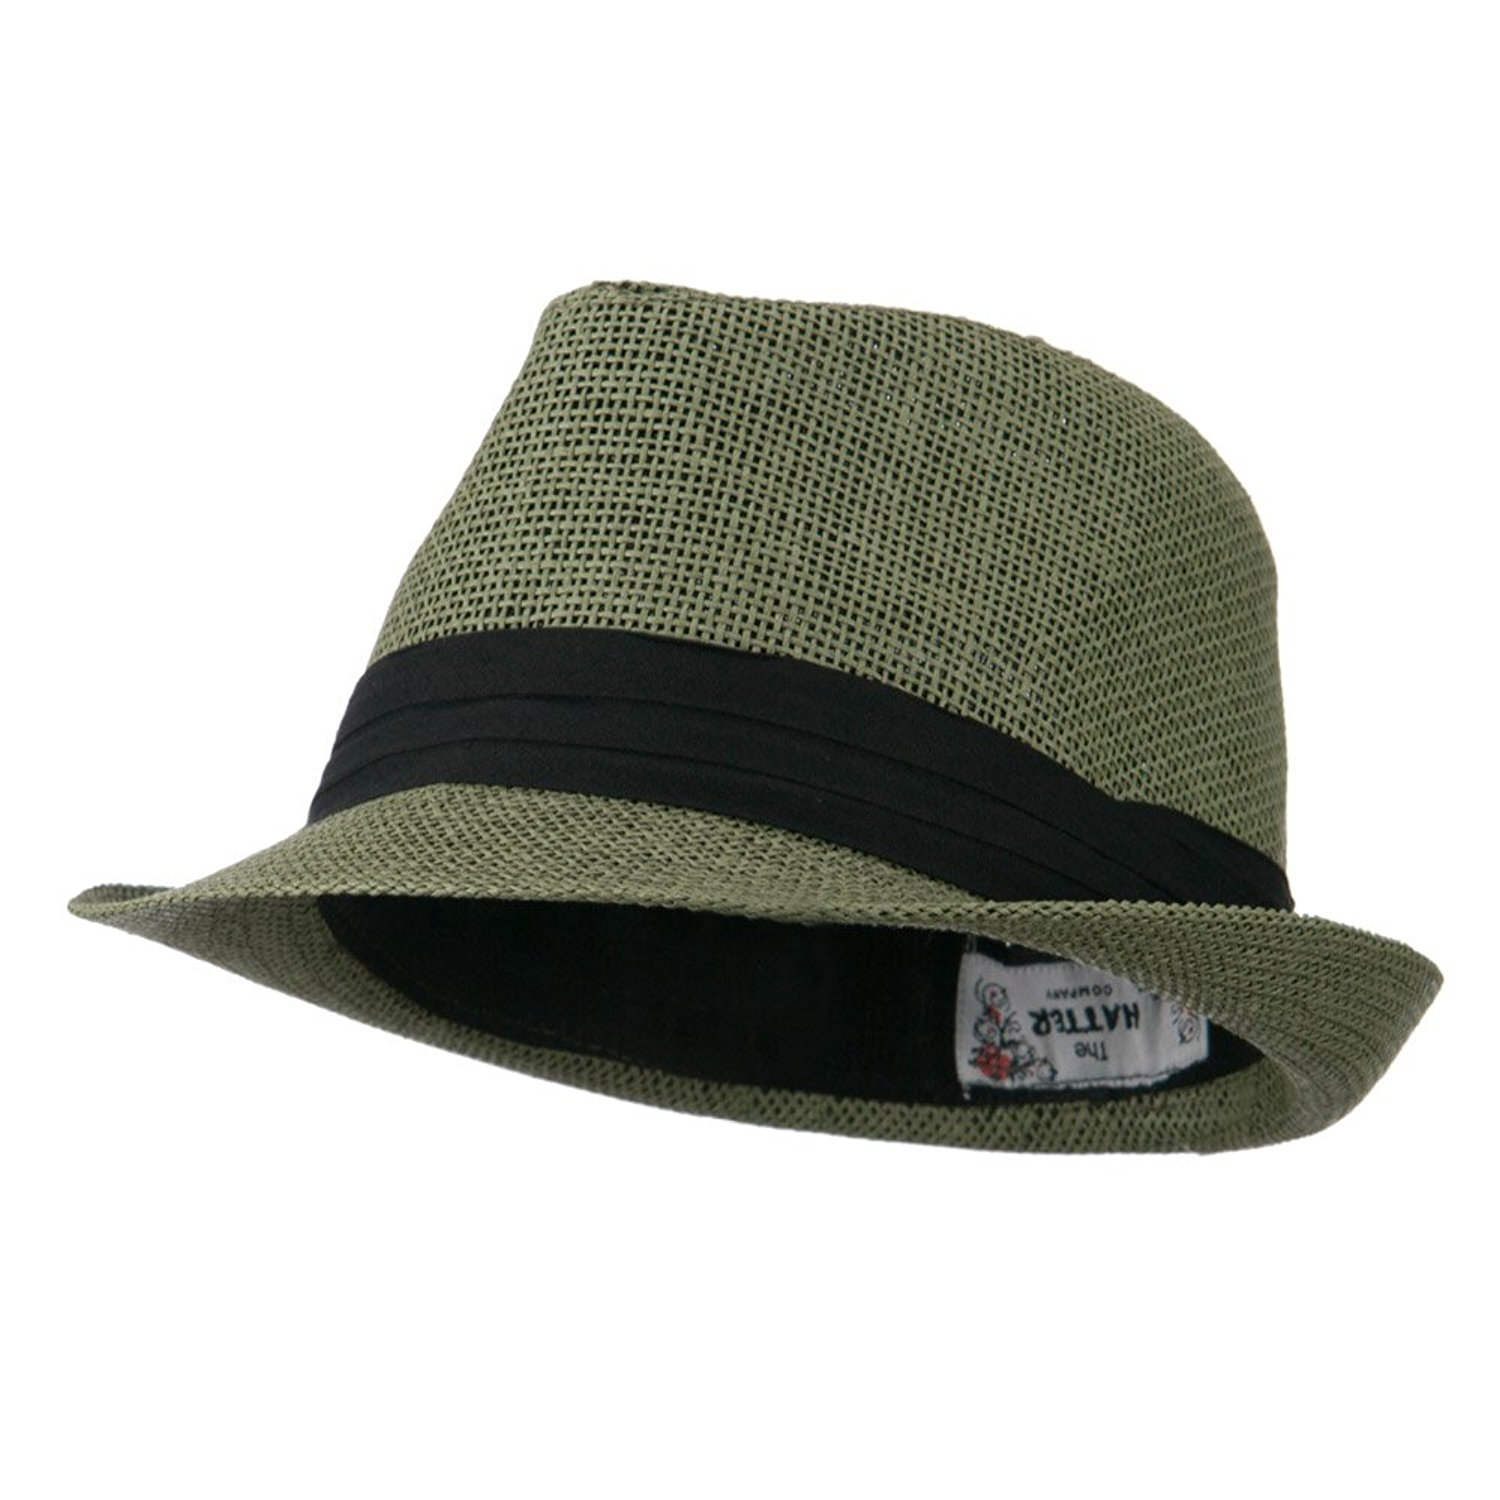 b871867a76b68 Get Quotations · Pleated Hat Band Straw Fedora Hat - Olive W18S37F